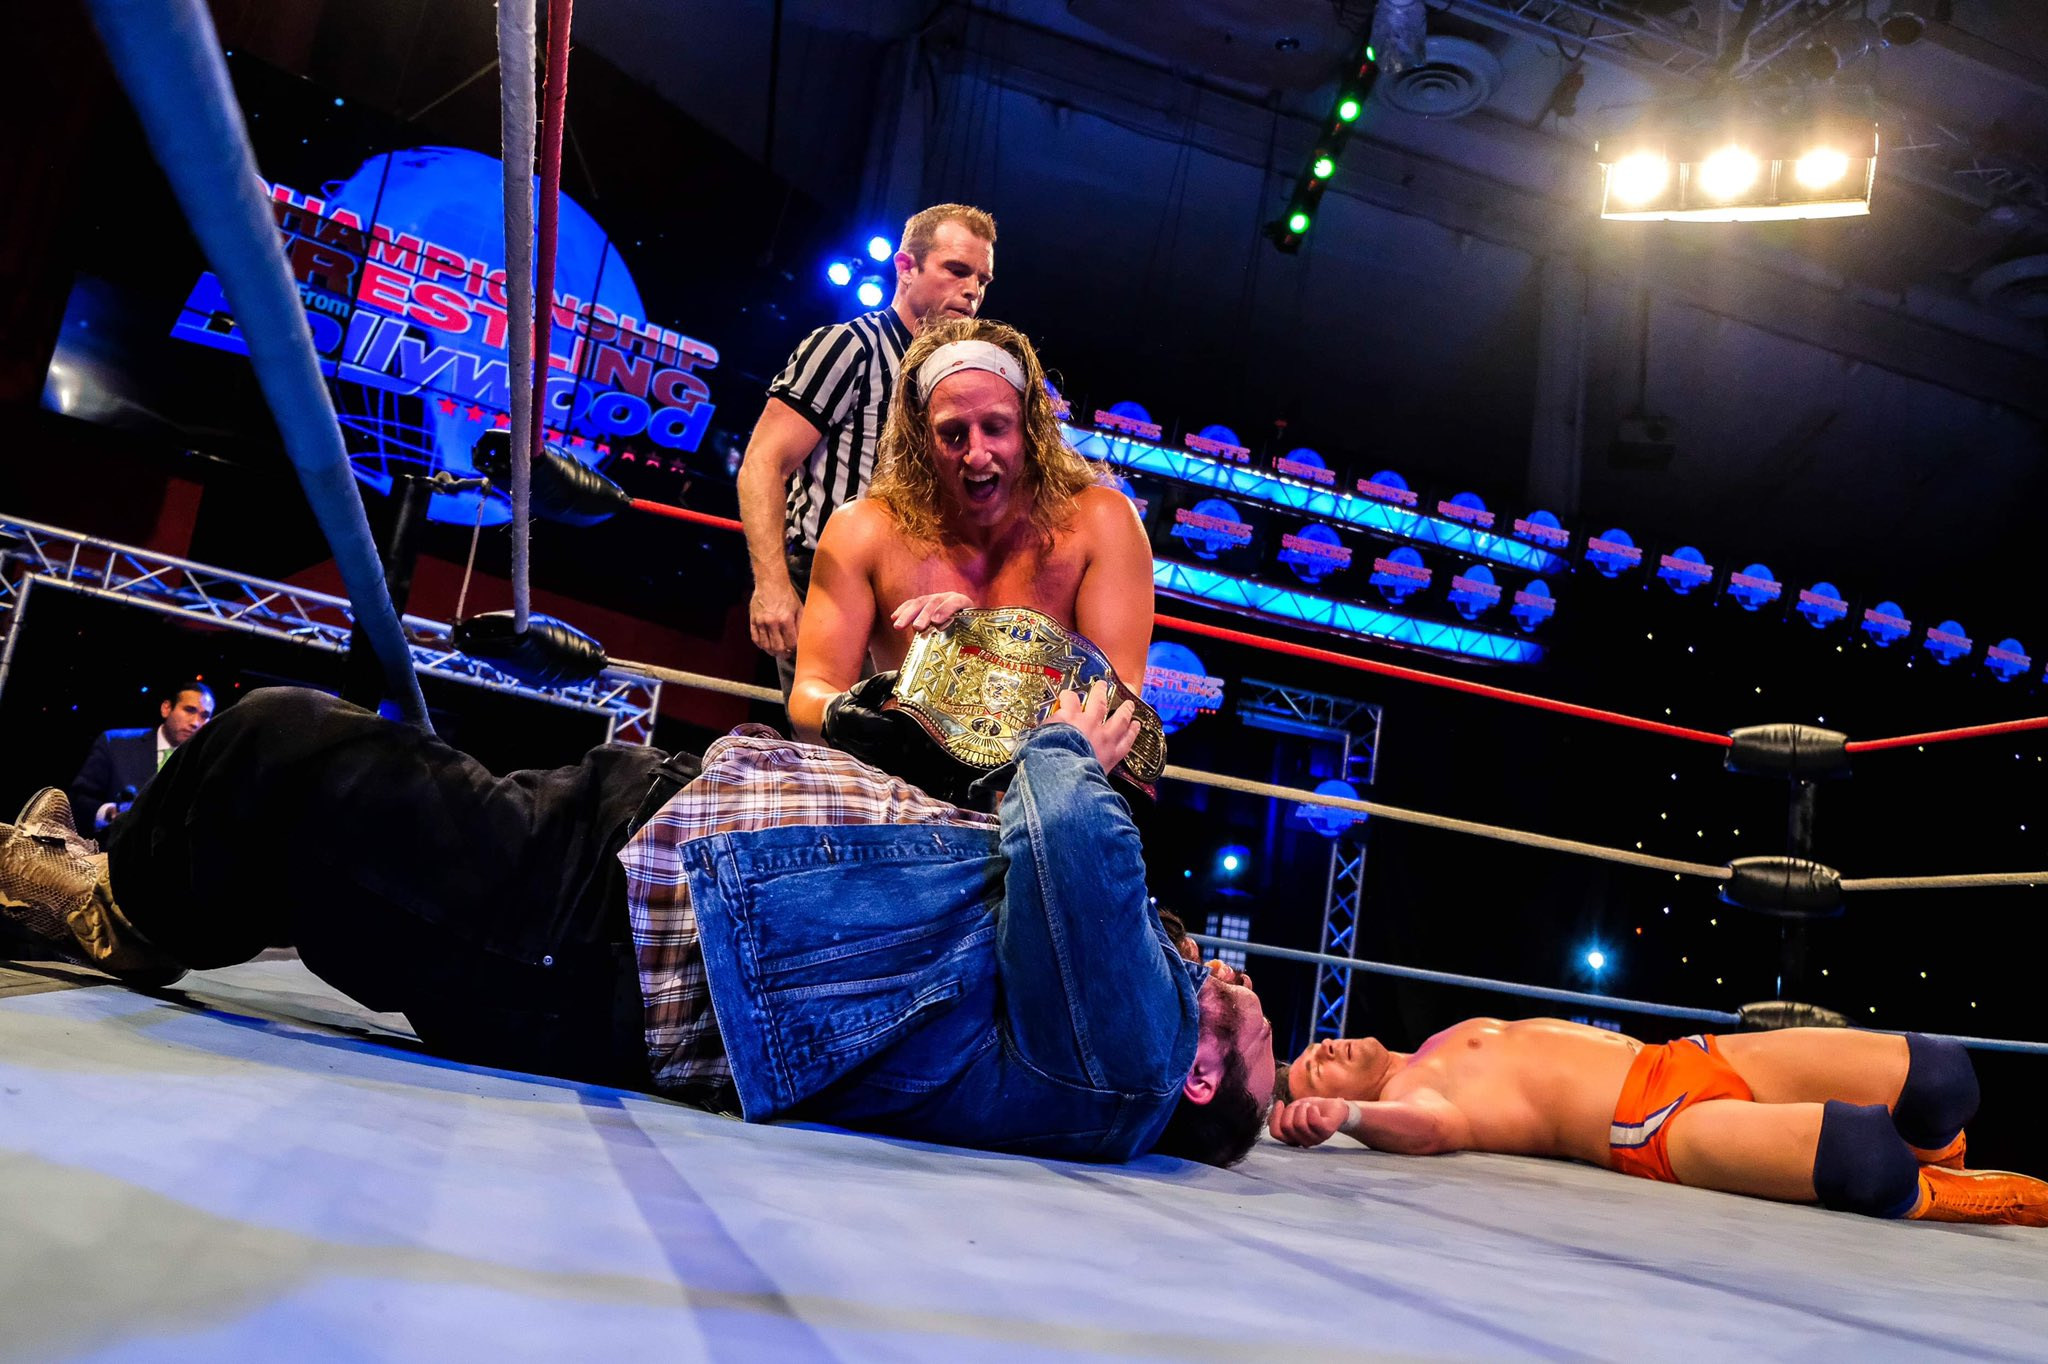 A Season of Gold on Championship Wrestling